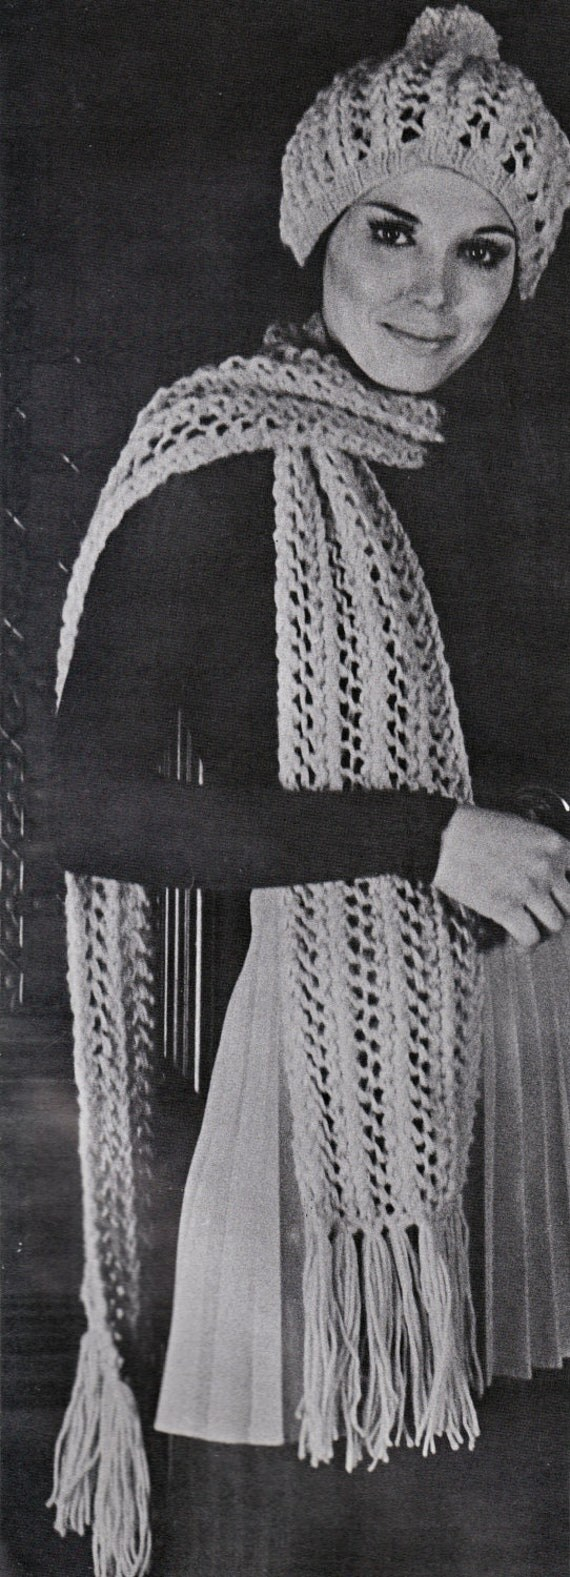 Knit Hat and Scarf Pattern 1960s Hippie Vintage Knitting PDF